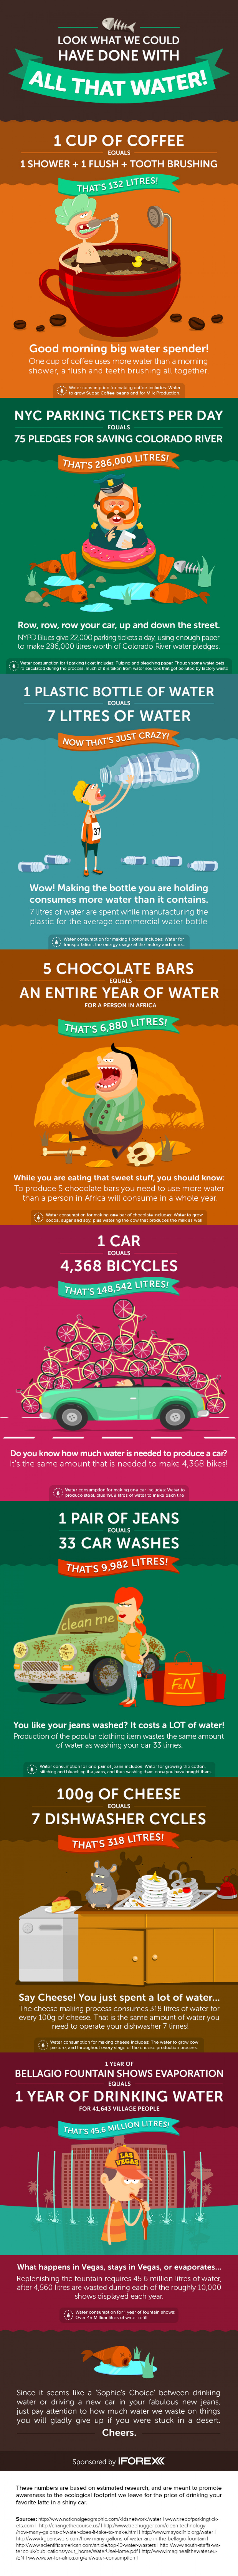 Look What We Could Have Done With All That Water! Infographic